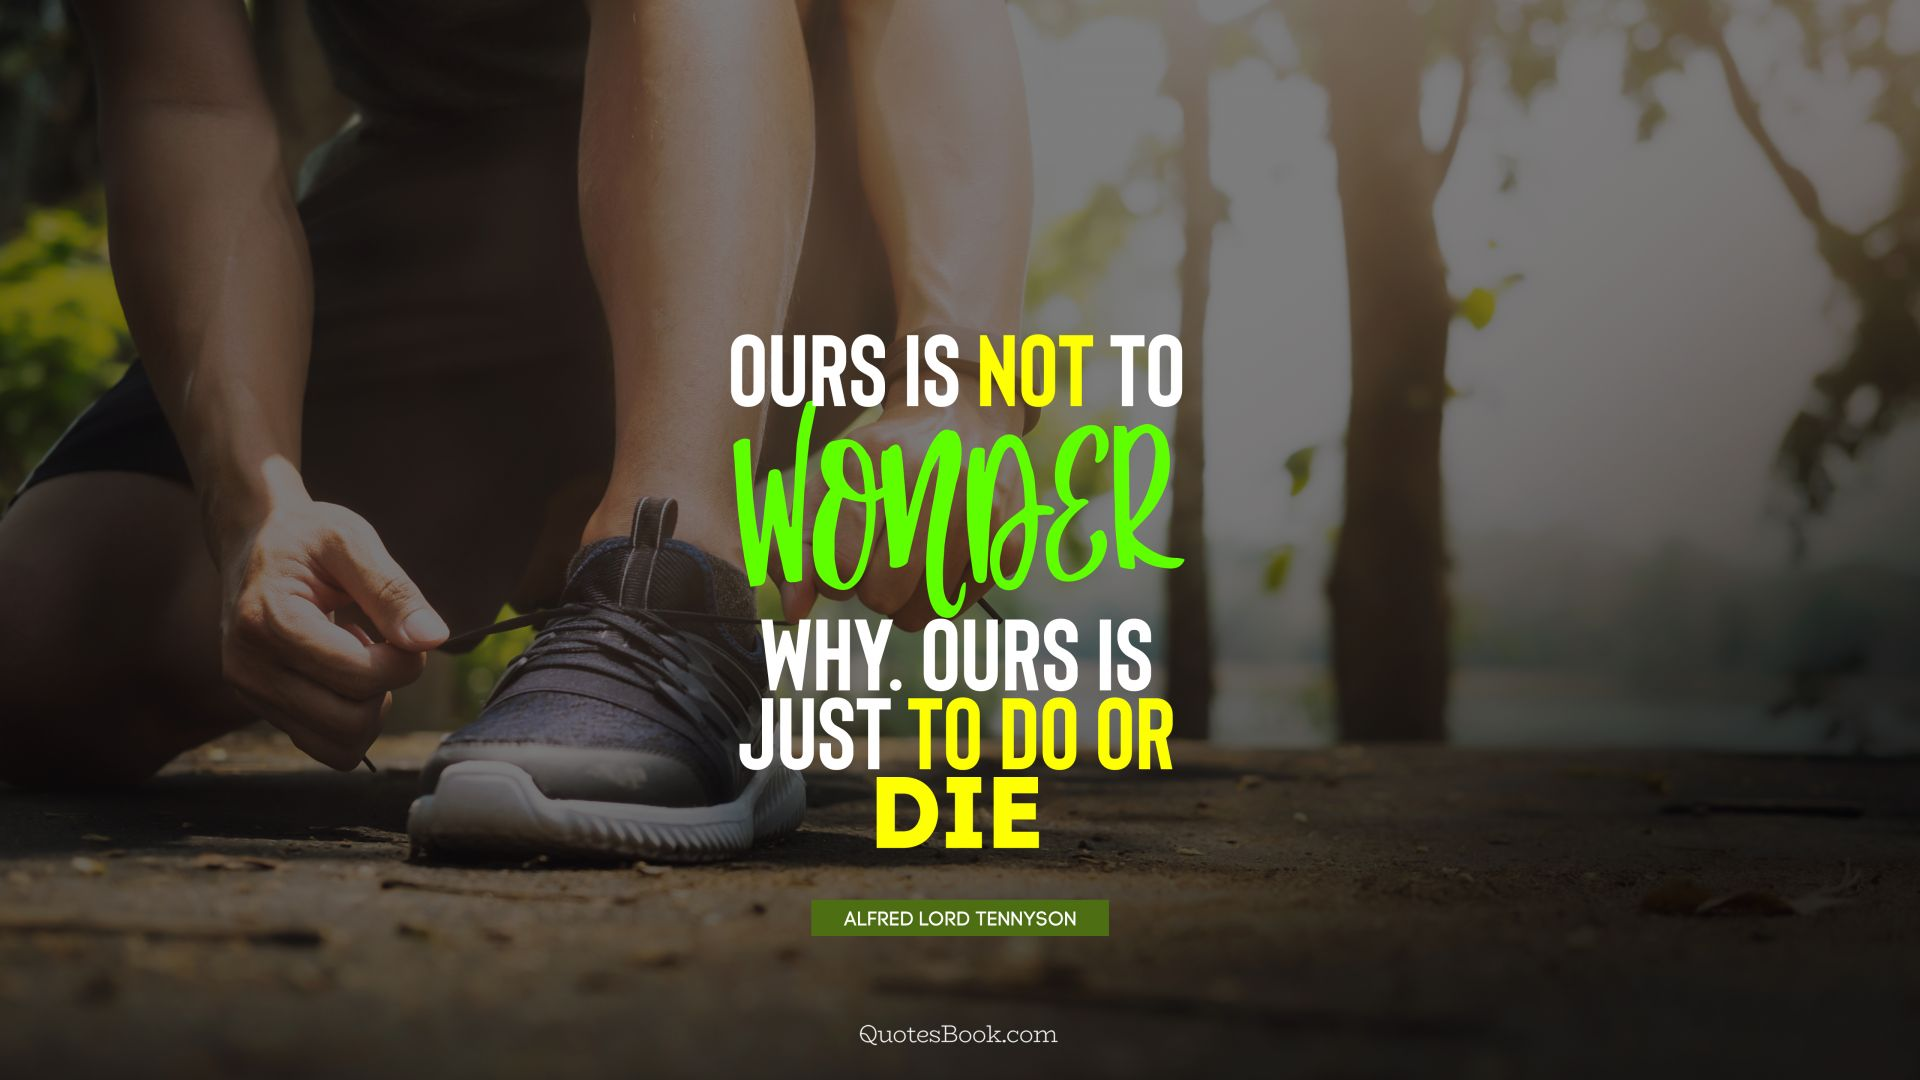 Ours is not to wonder why. Ours is just to do or die. - Quote by Alfred Lord Tennyson